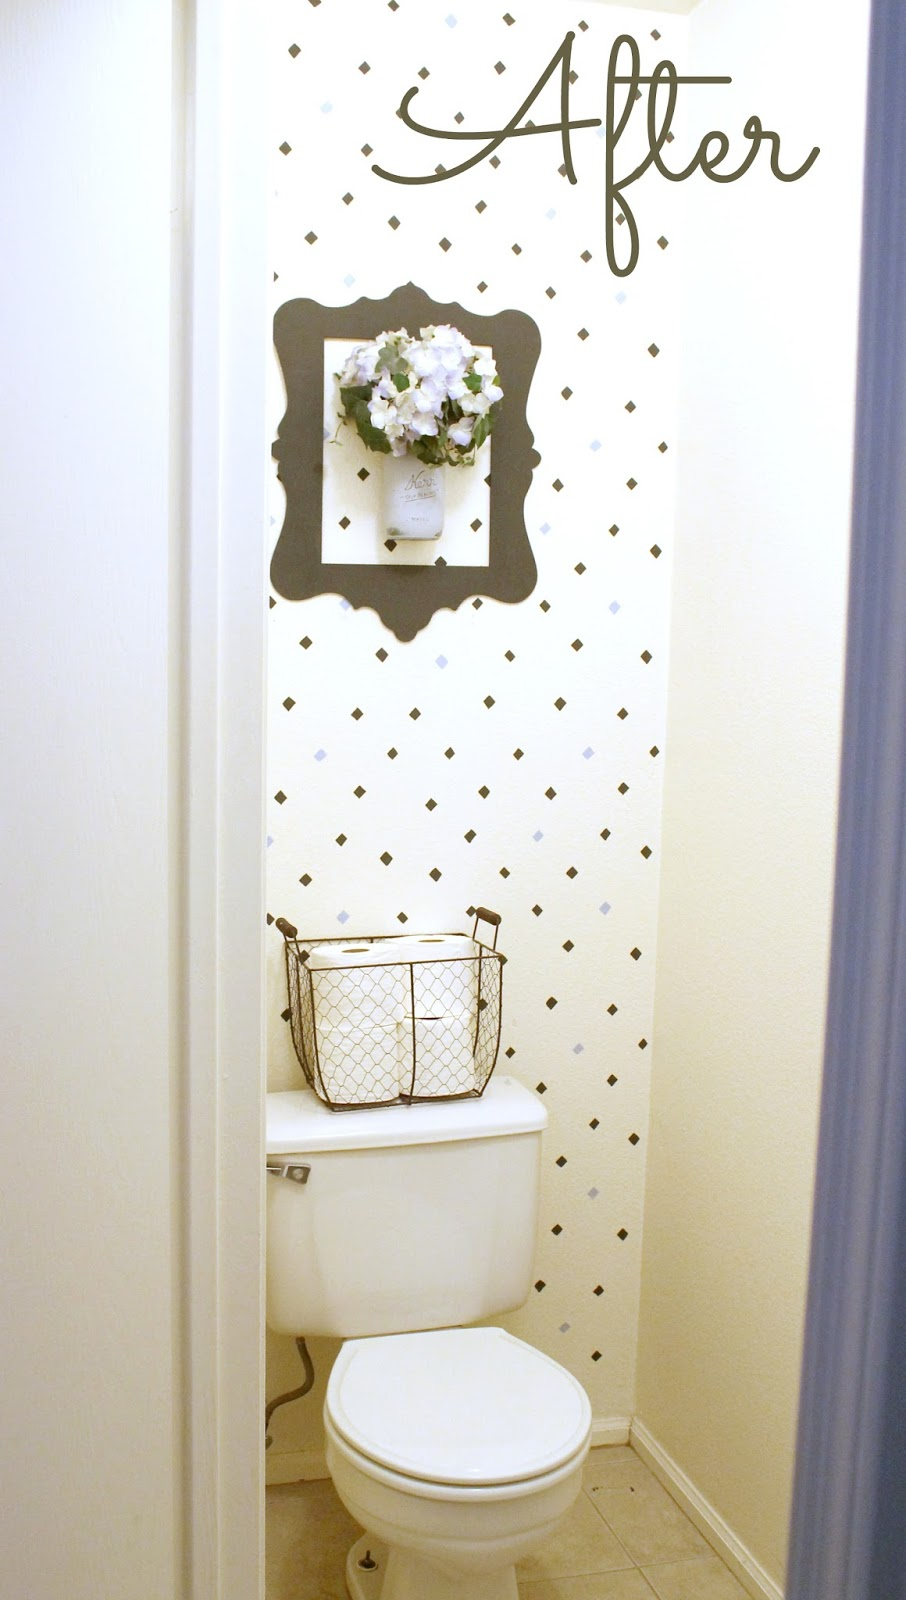 bathroom cutting edge stencils can be used for room redos furniture makeovers curtains pillows craft projects and more check out their blog for design ideas